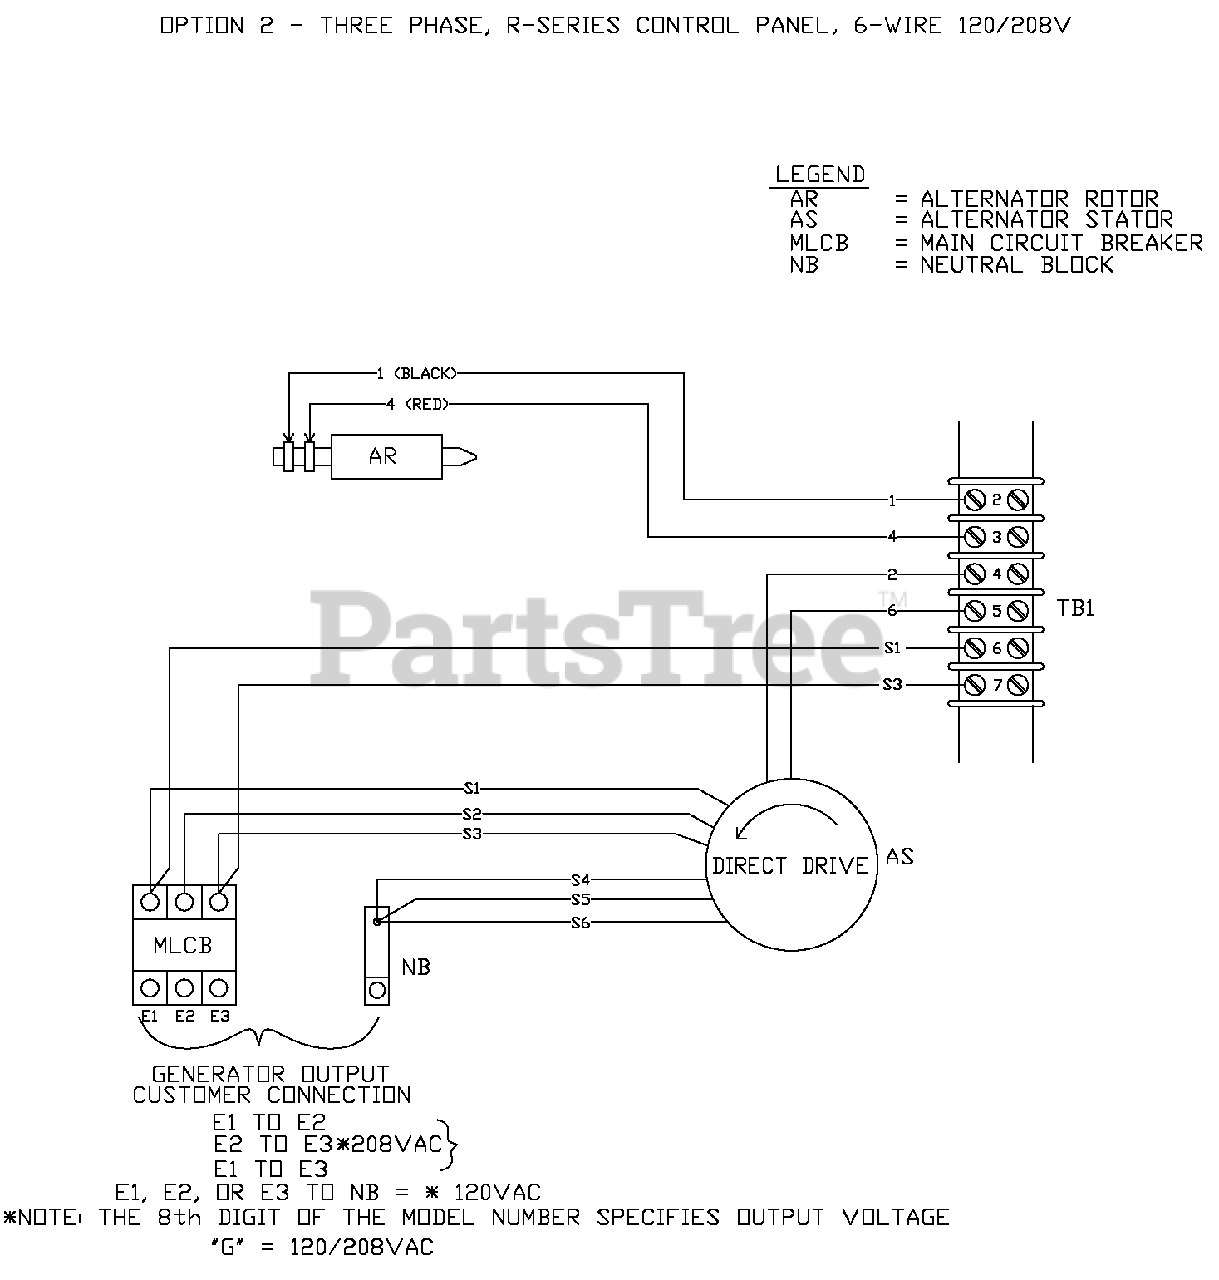 Generac QT03016JNSN - Generac 30kW Home Standby Generator (SN: 5686950 -  5868396) (2010) Wiring Diagram (OF6839) Parts Lookup with Diagrams |  PartsTree | Generac 30 Kw Wiring Diagram |  | PartsTree